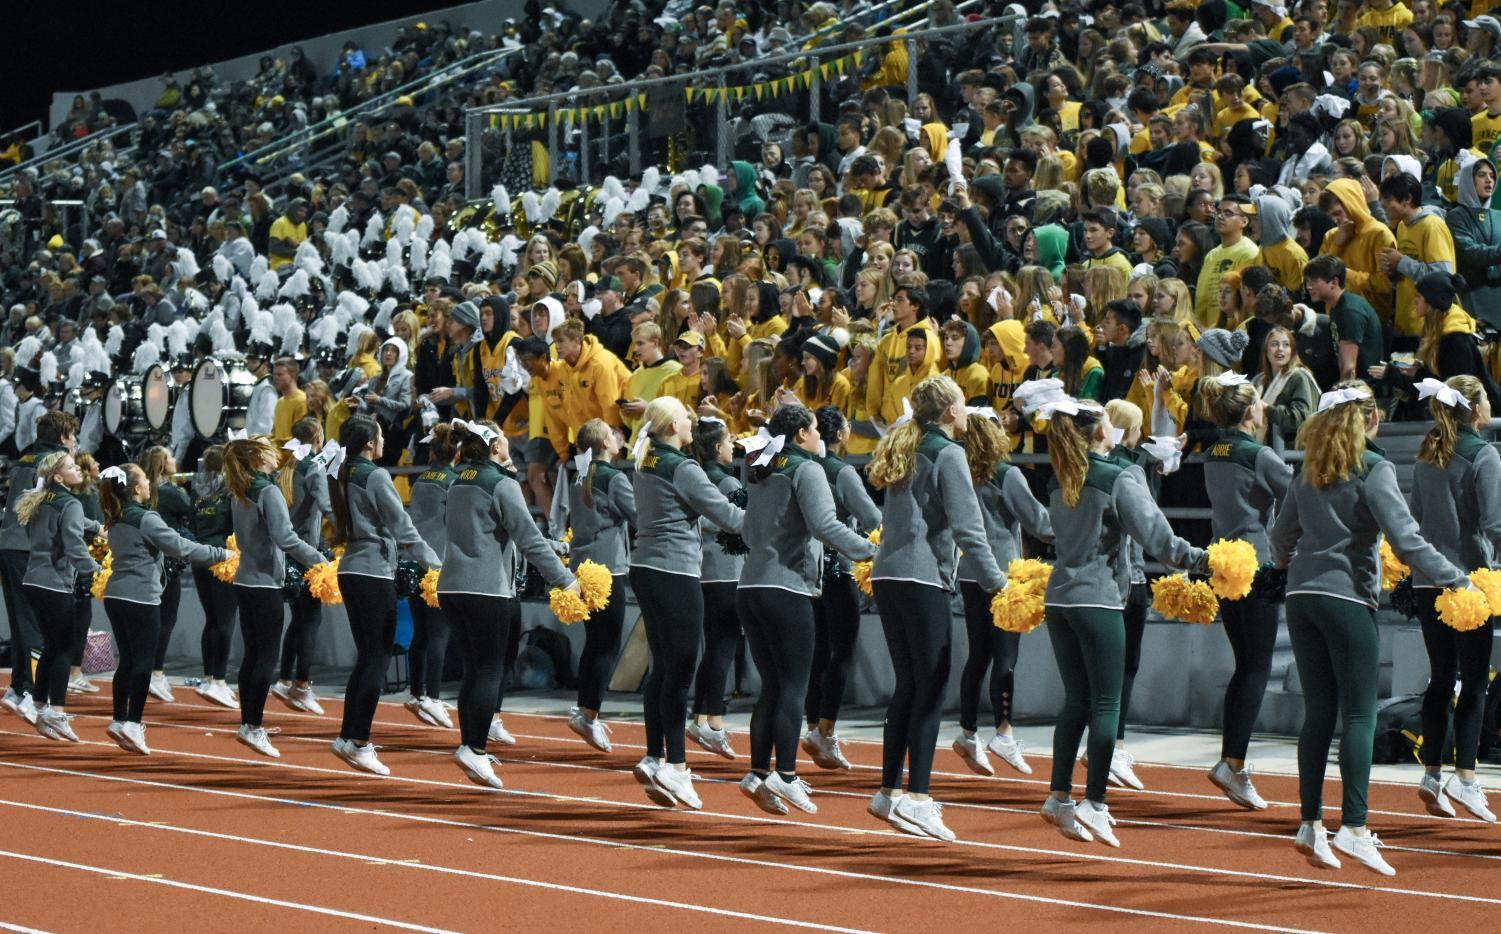 Kennedy student section focused on the game while the cheerleaders perform.